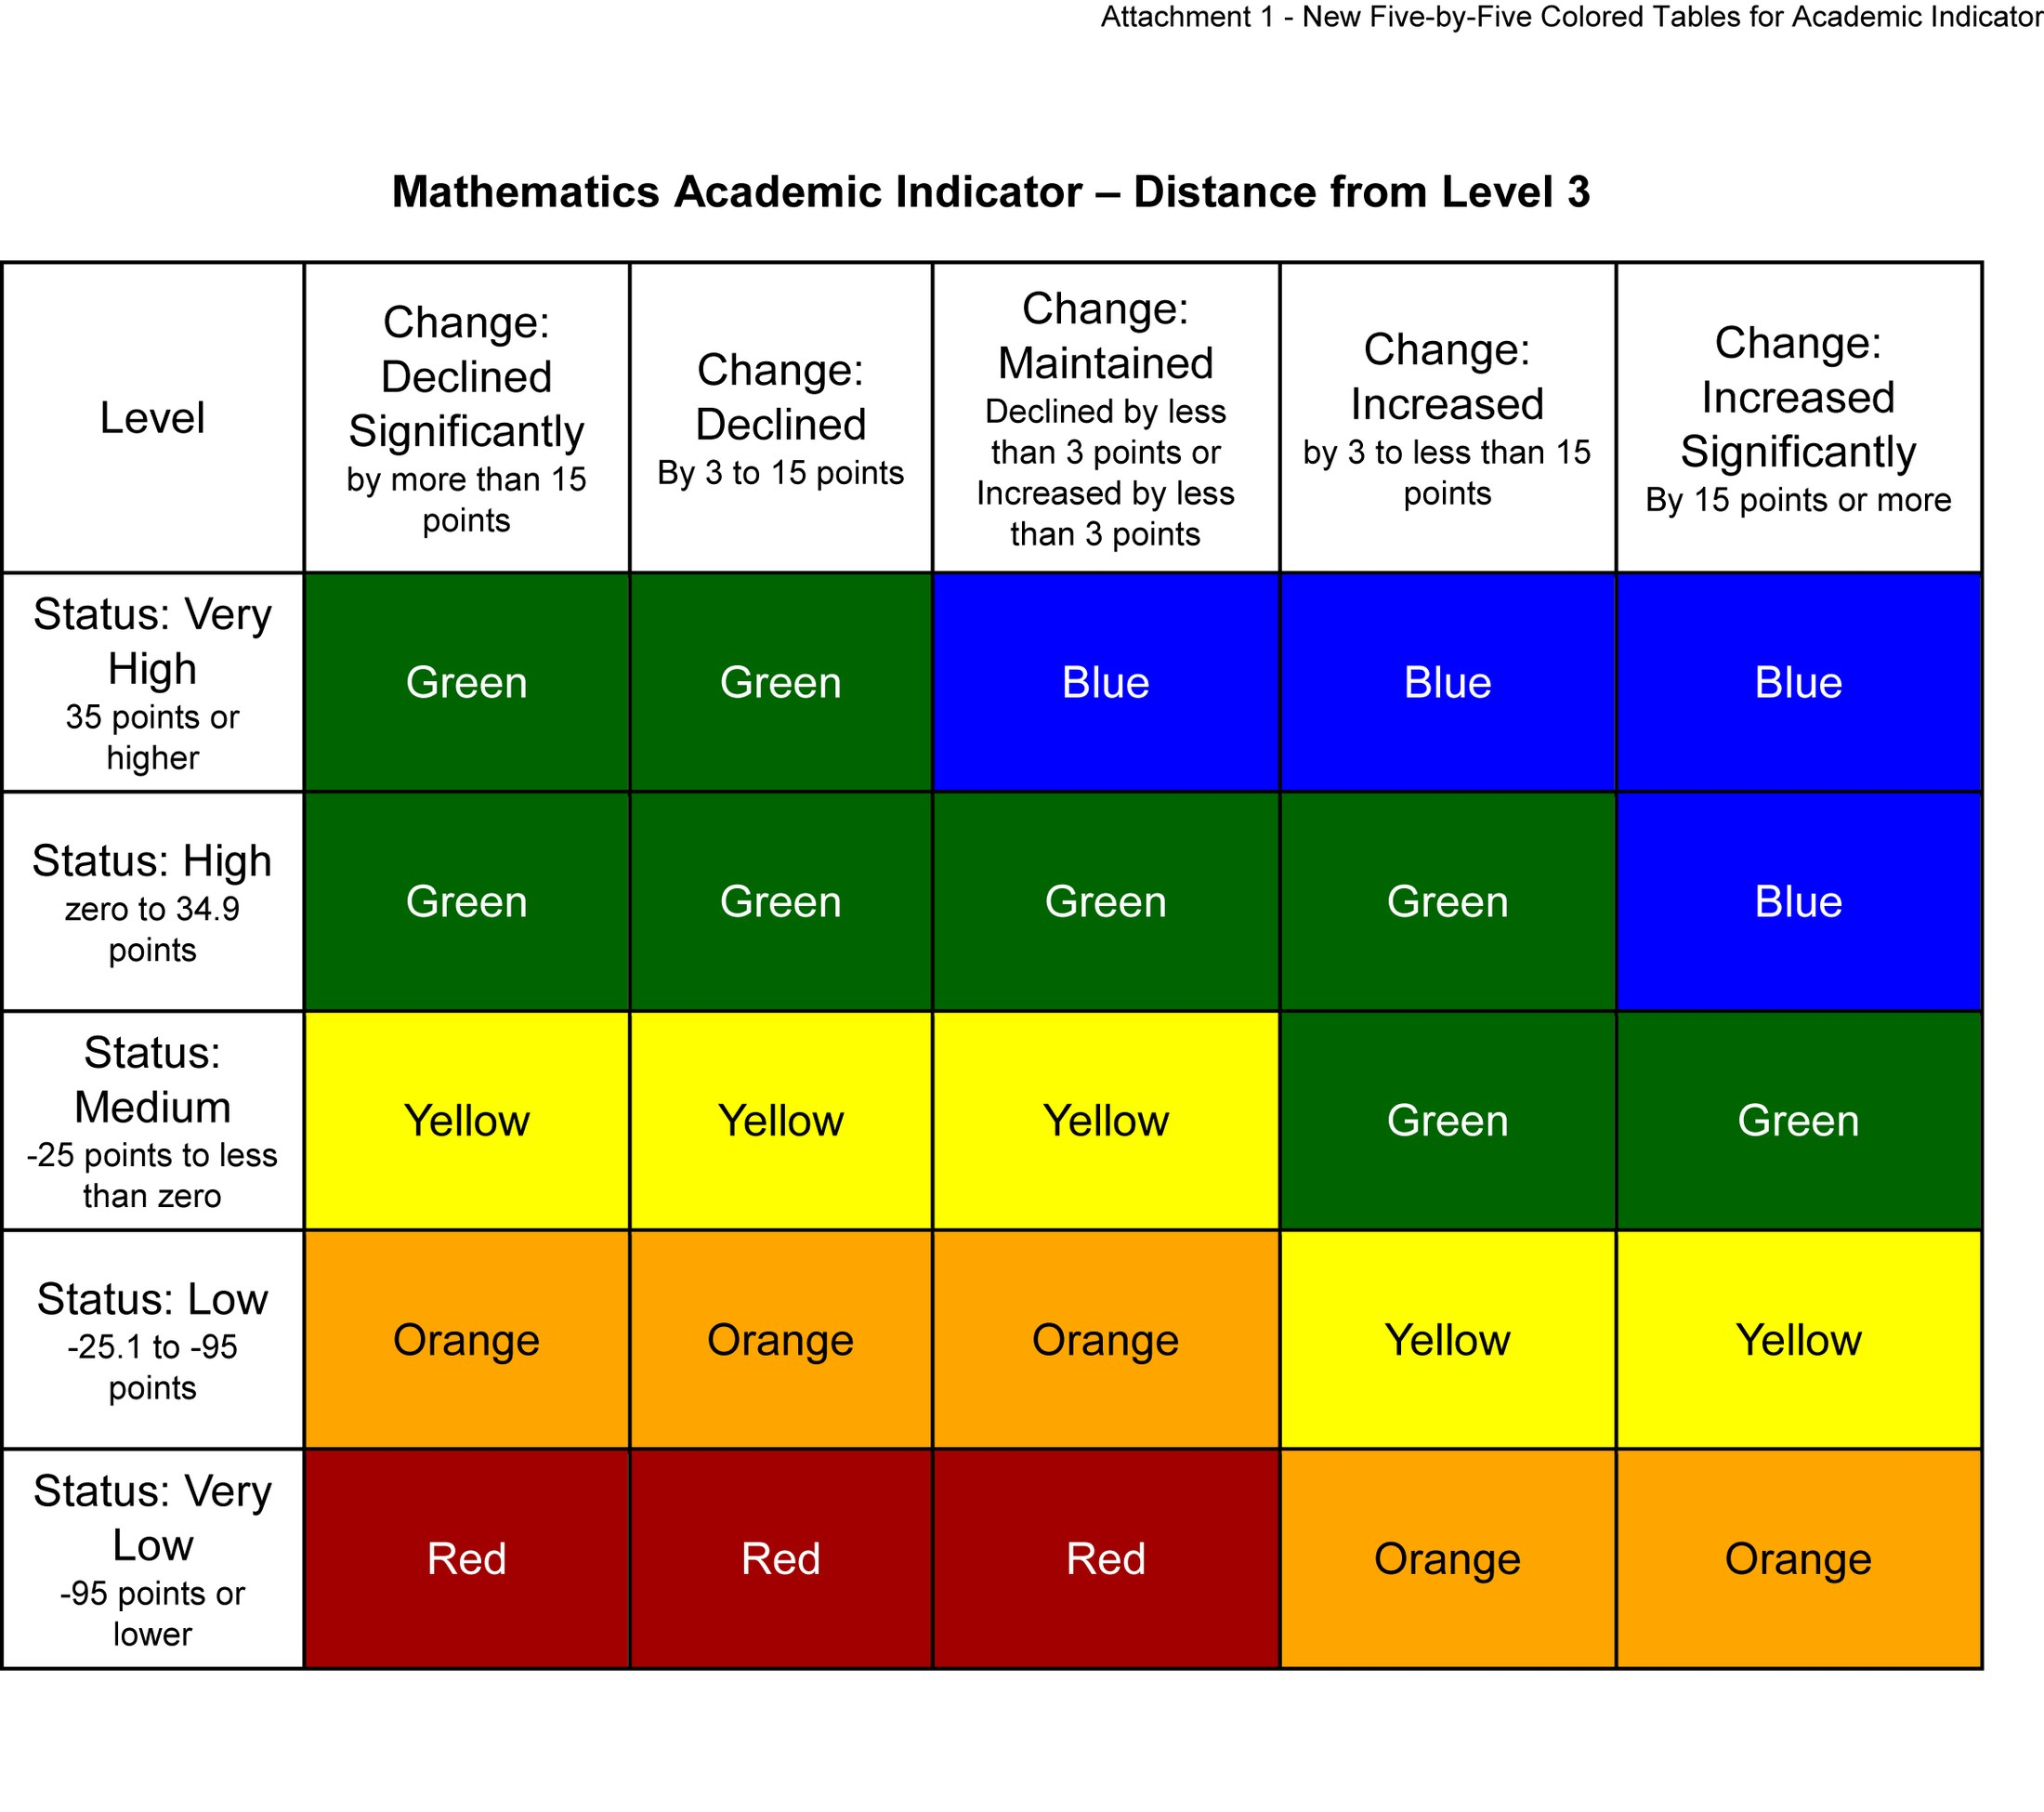 Figure 2. Mathematics Academic Indicator, Dashboard five by five.